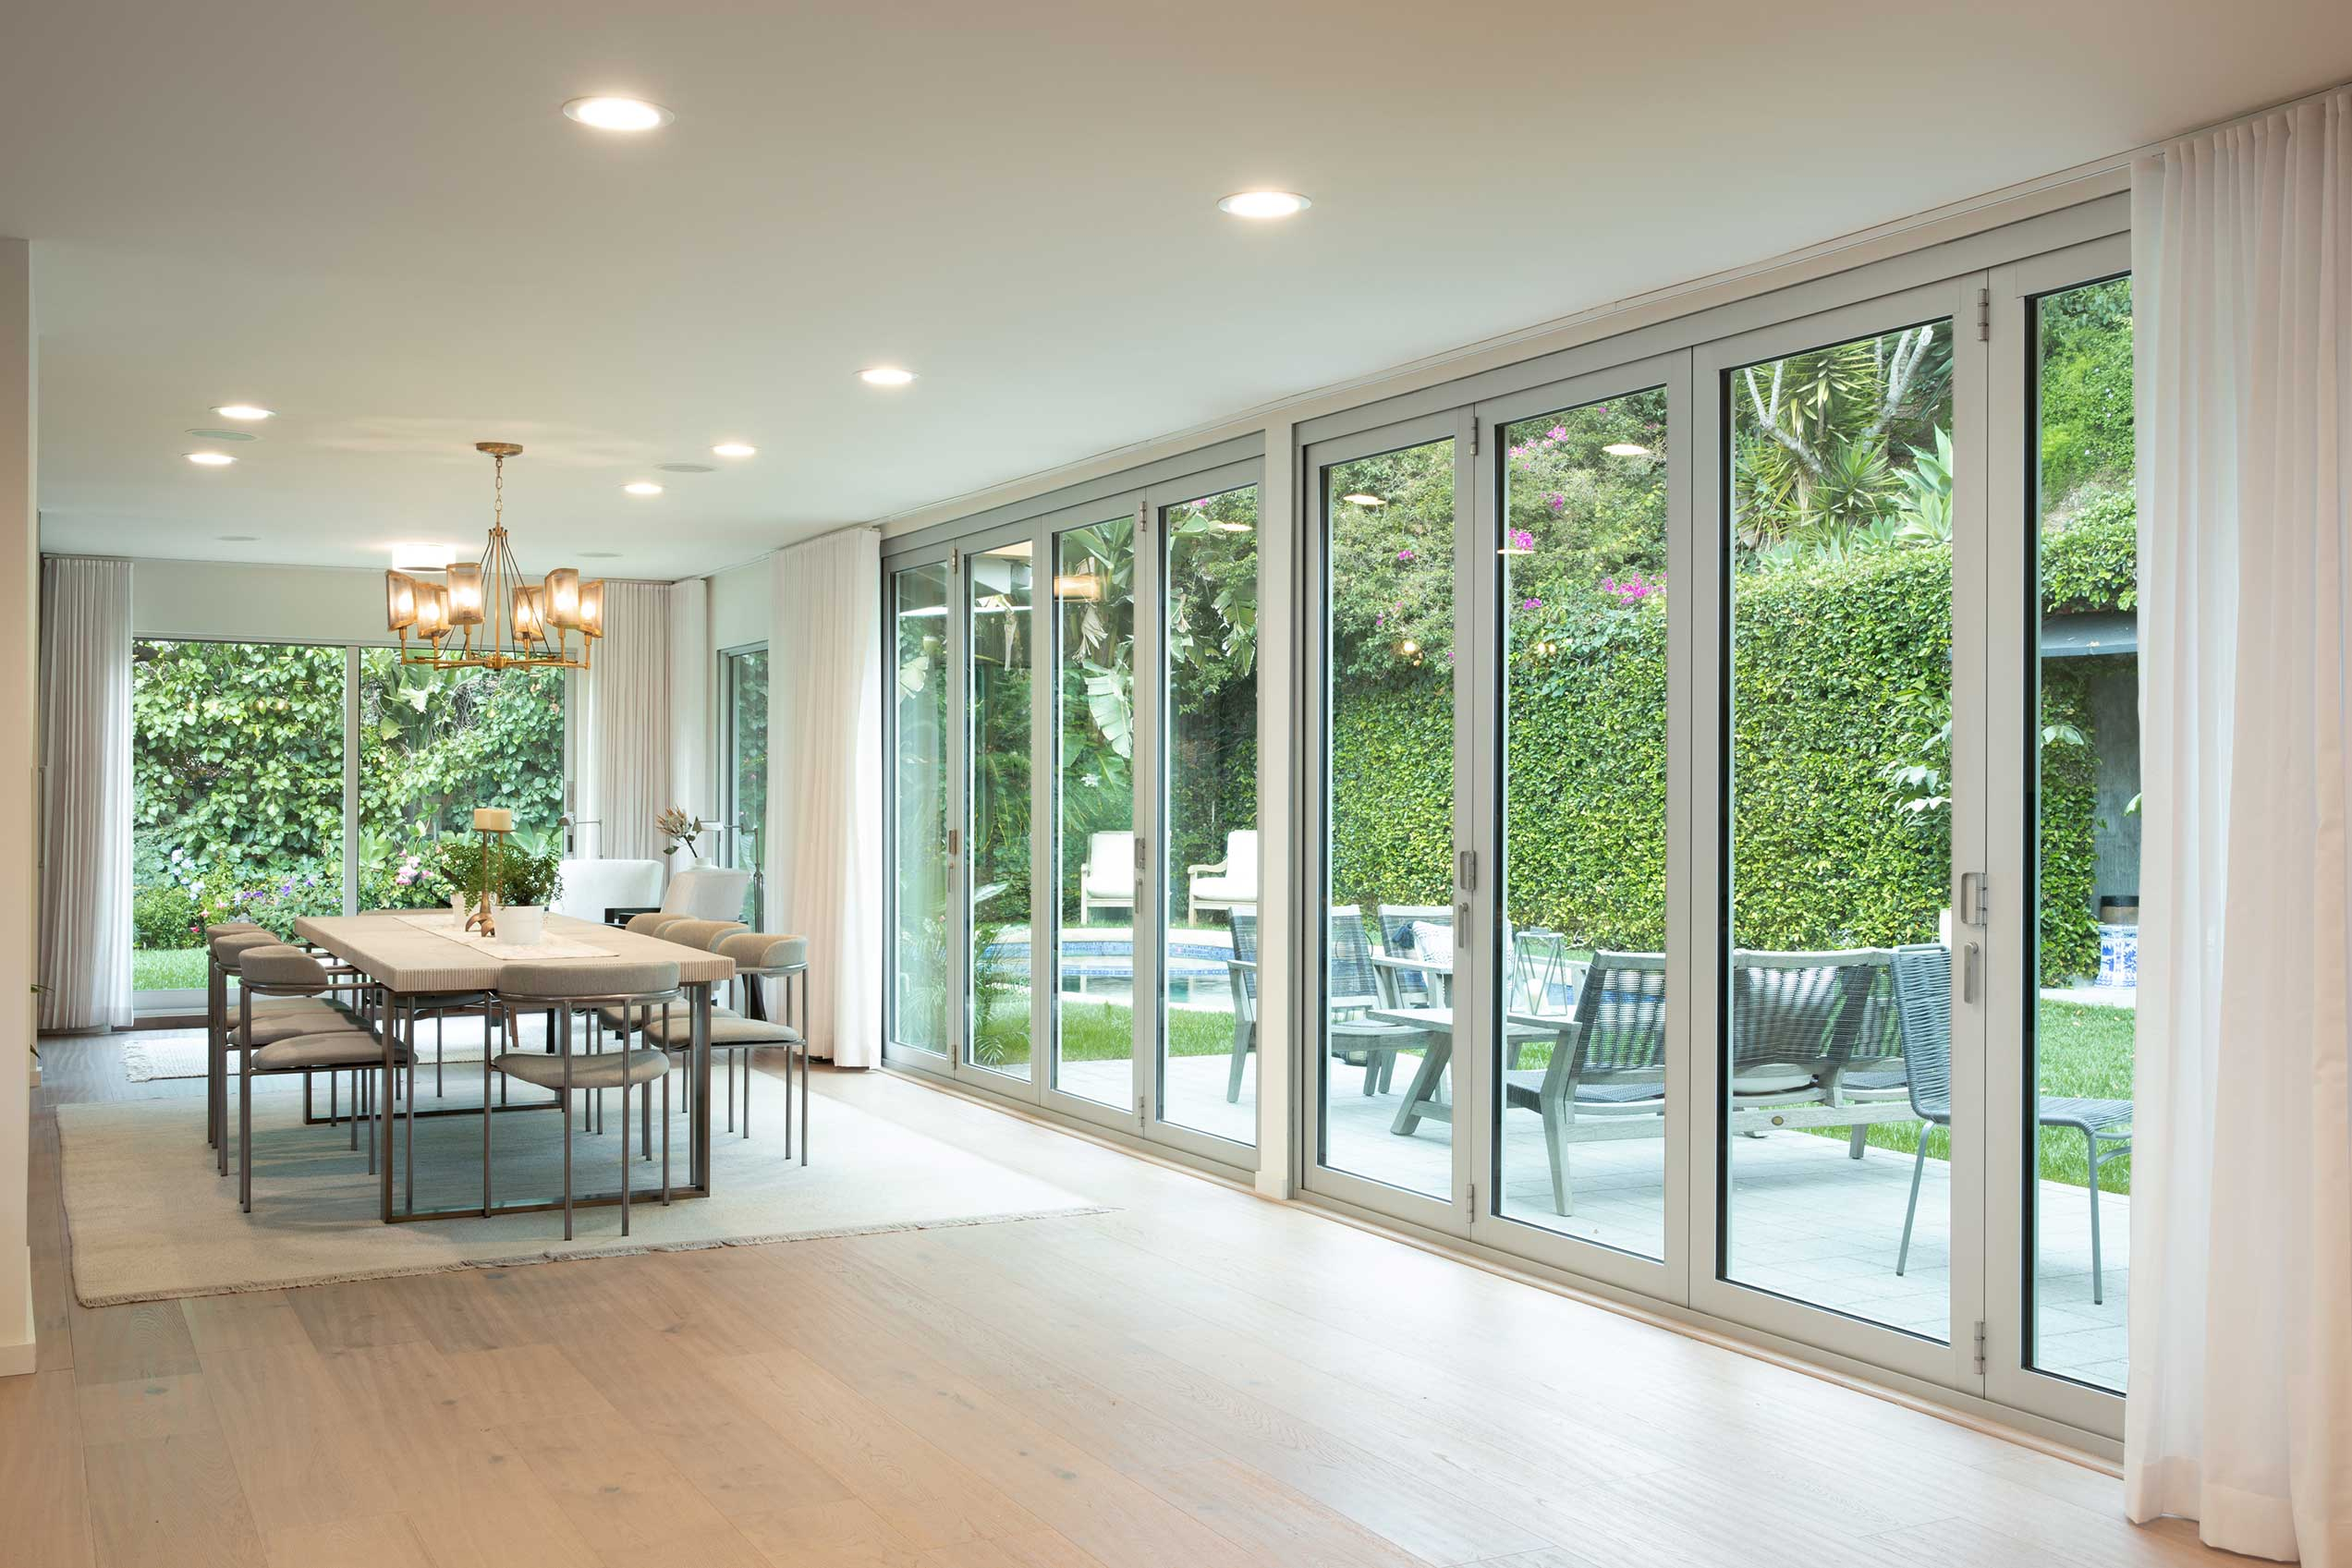 Two giant bi-fold doors completely open up the living/dining spaces to the pool and outdoor patio.